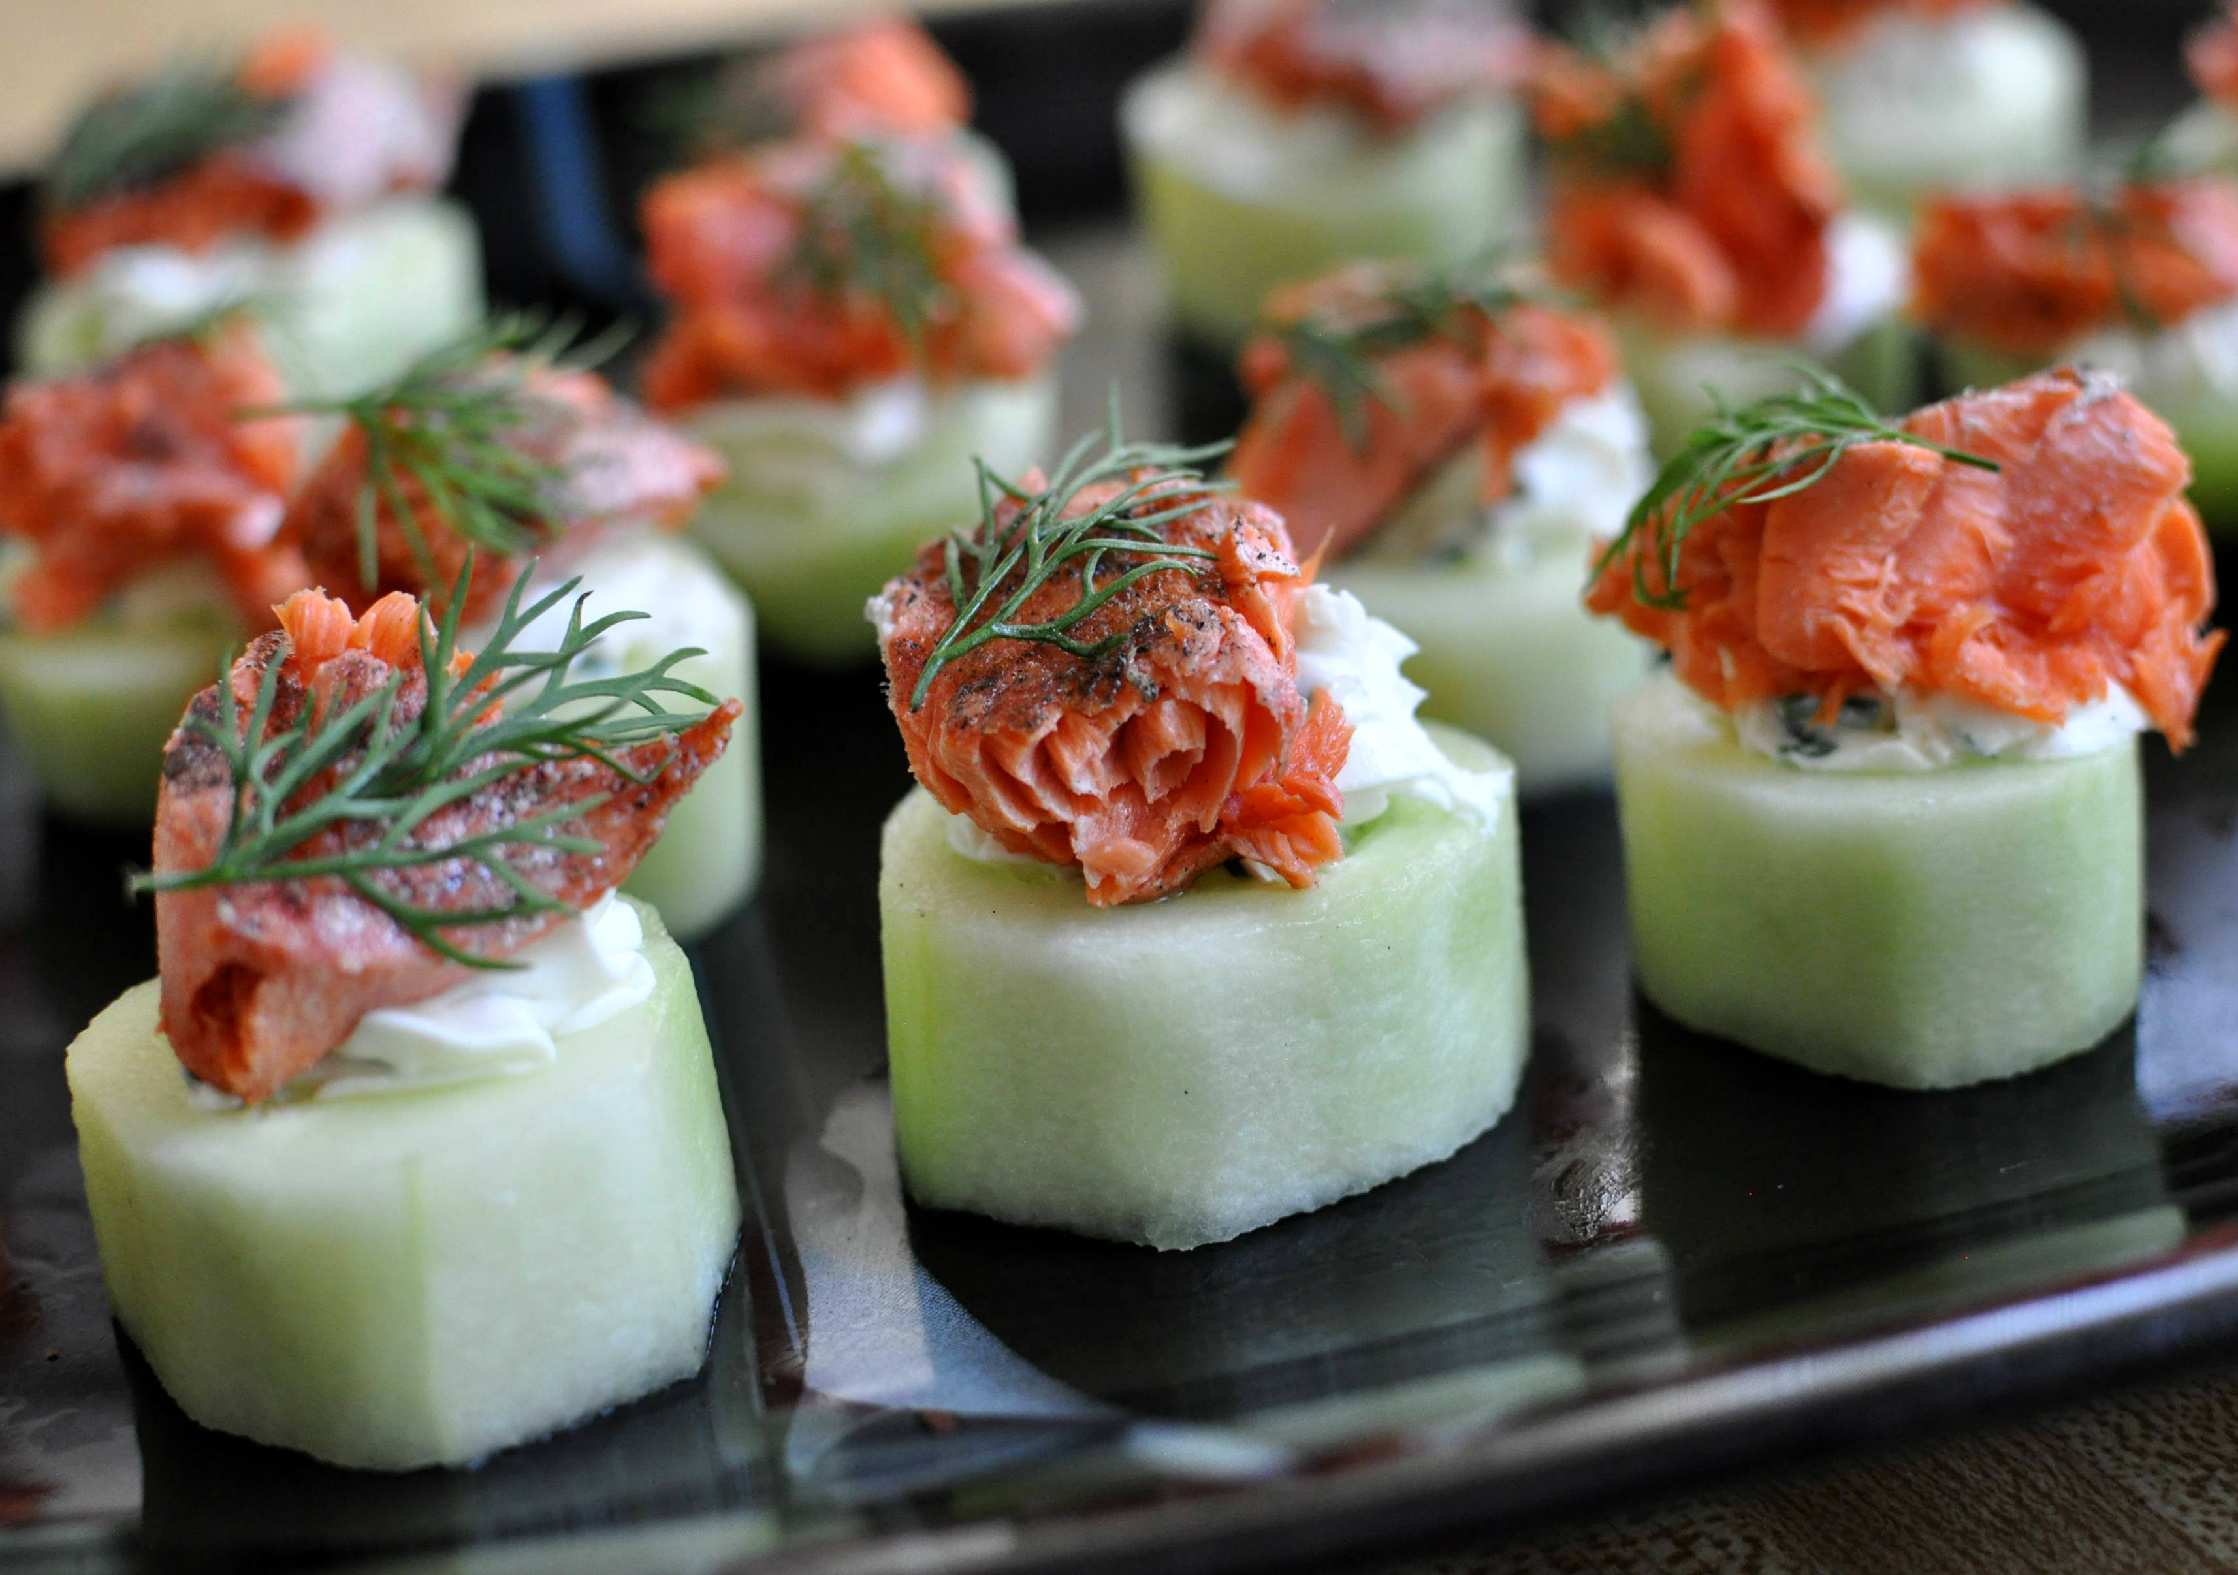 A refreshing twist on the traditional bagel and lox, these smoked salmon bites are served on a hollowed out piece of fresh cucumber!